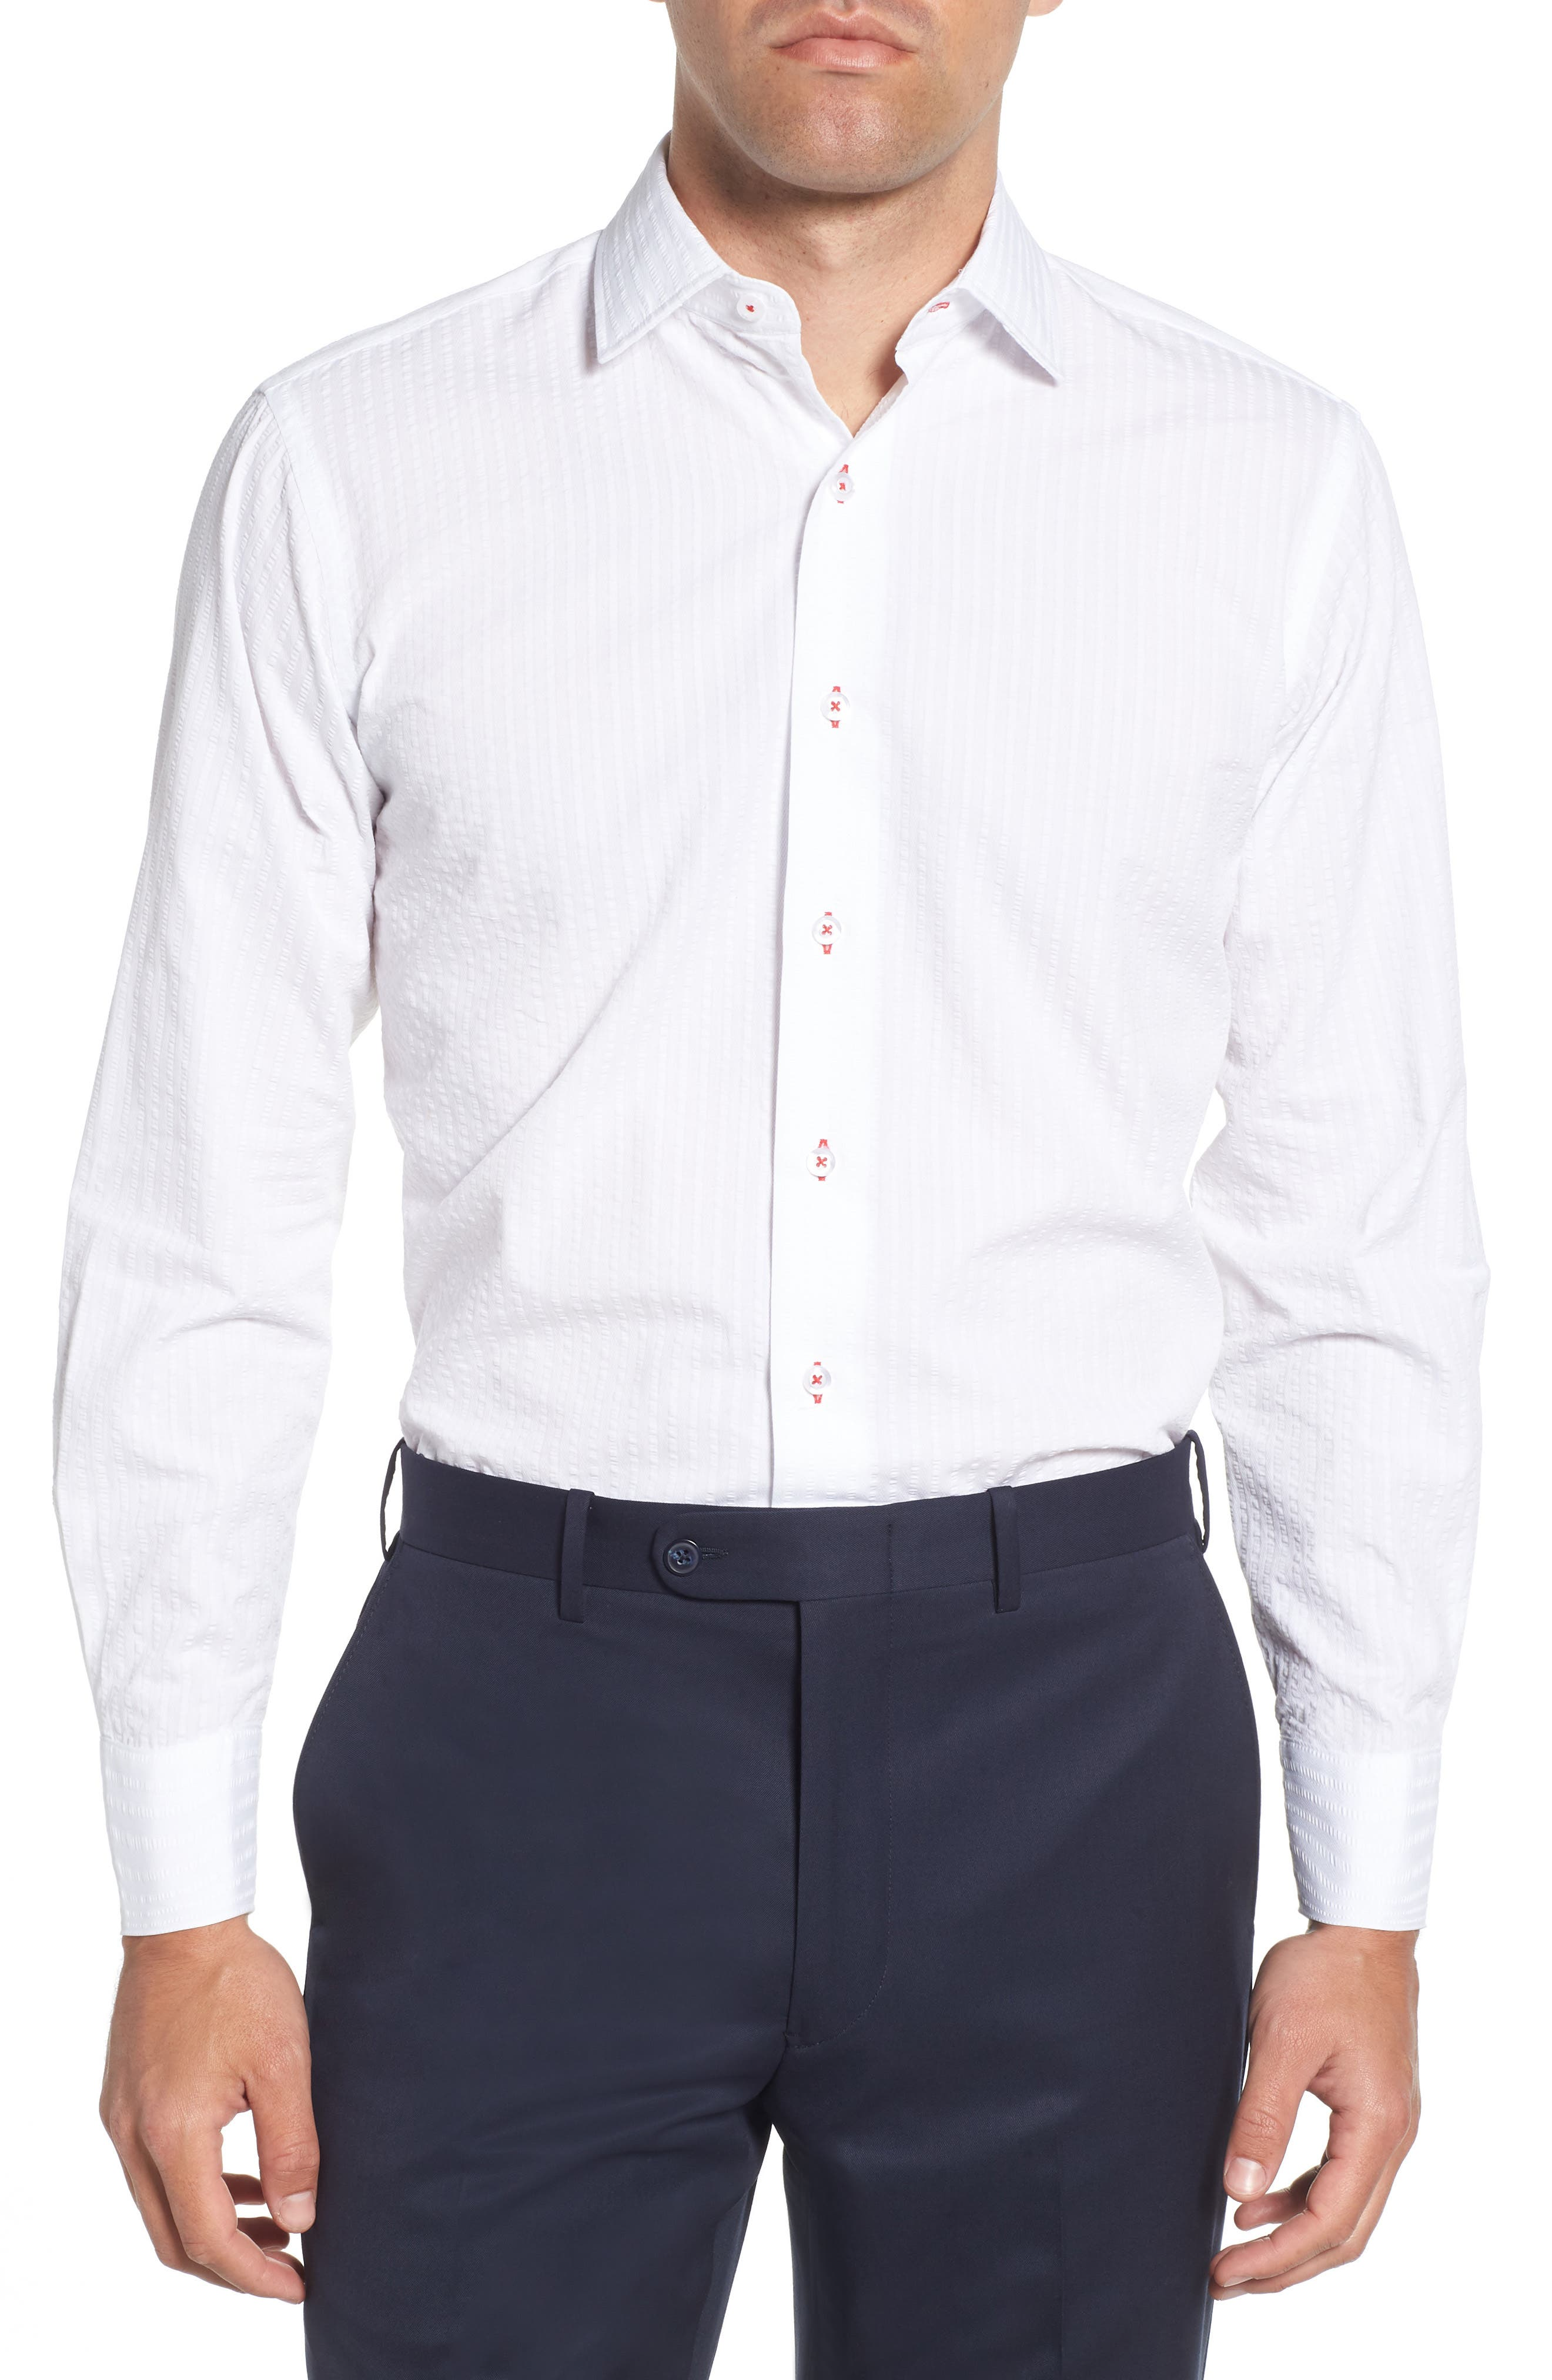 Trim Fit Seersucker Dress Shirt,                         Main,                         color, White